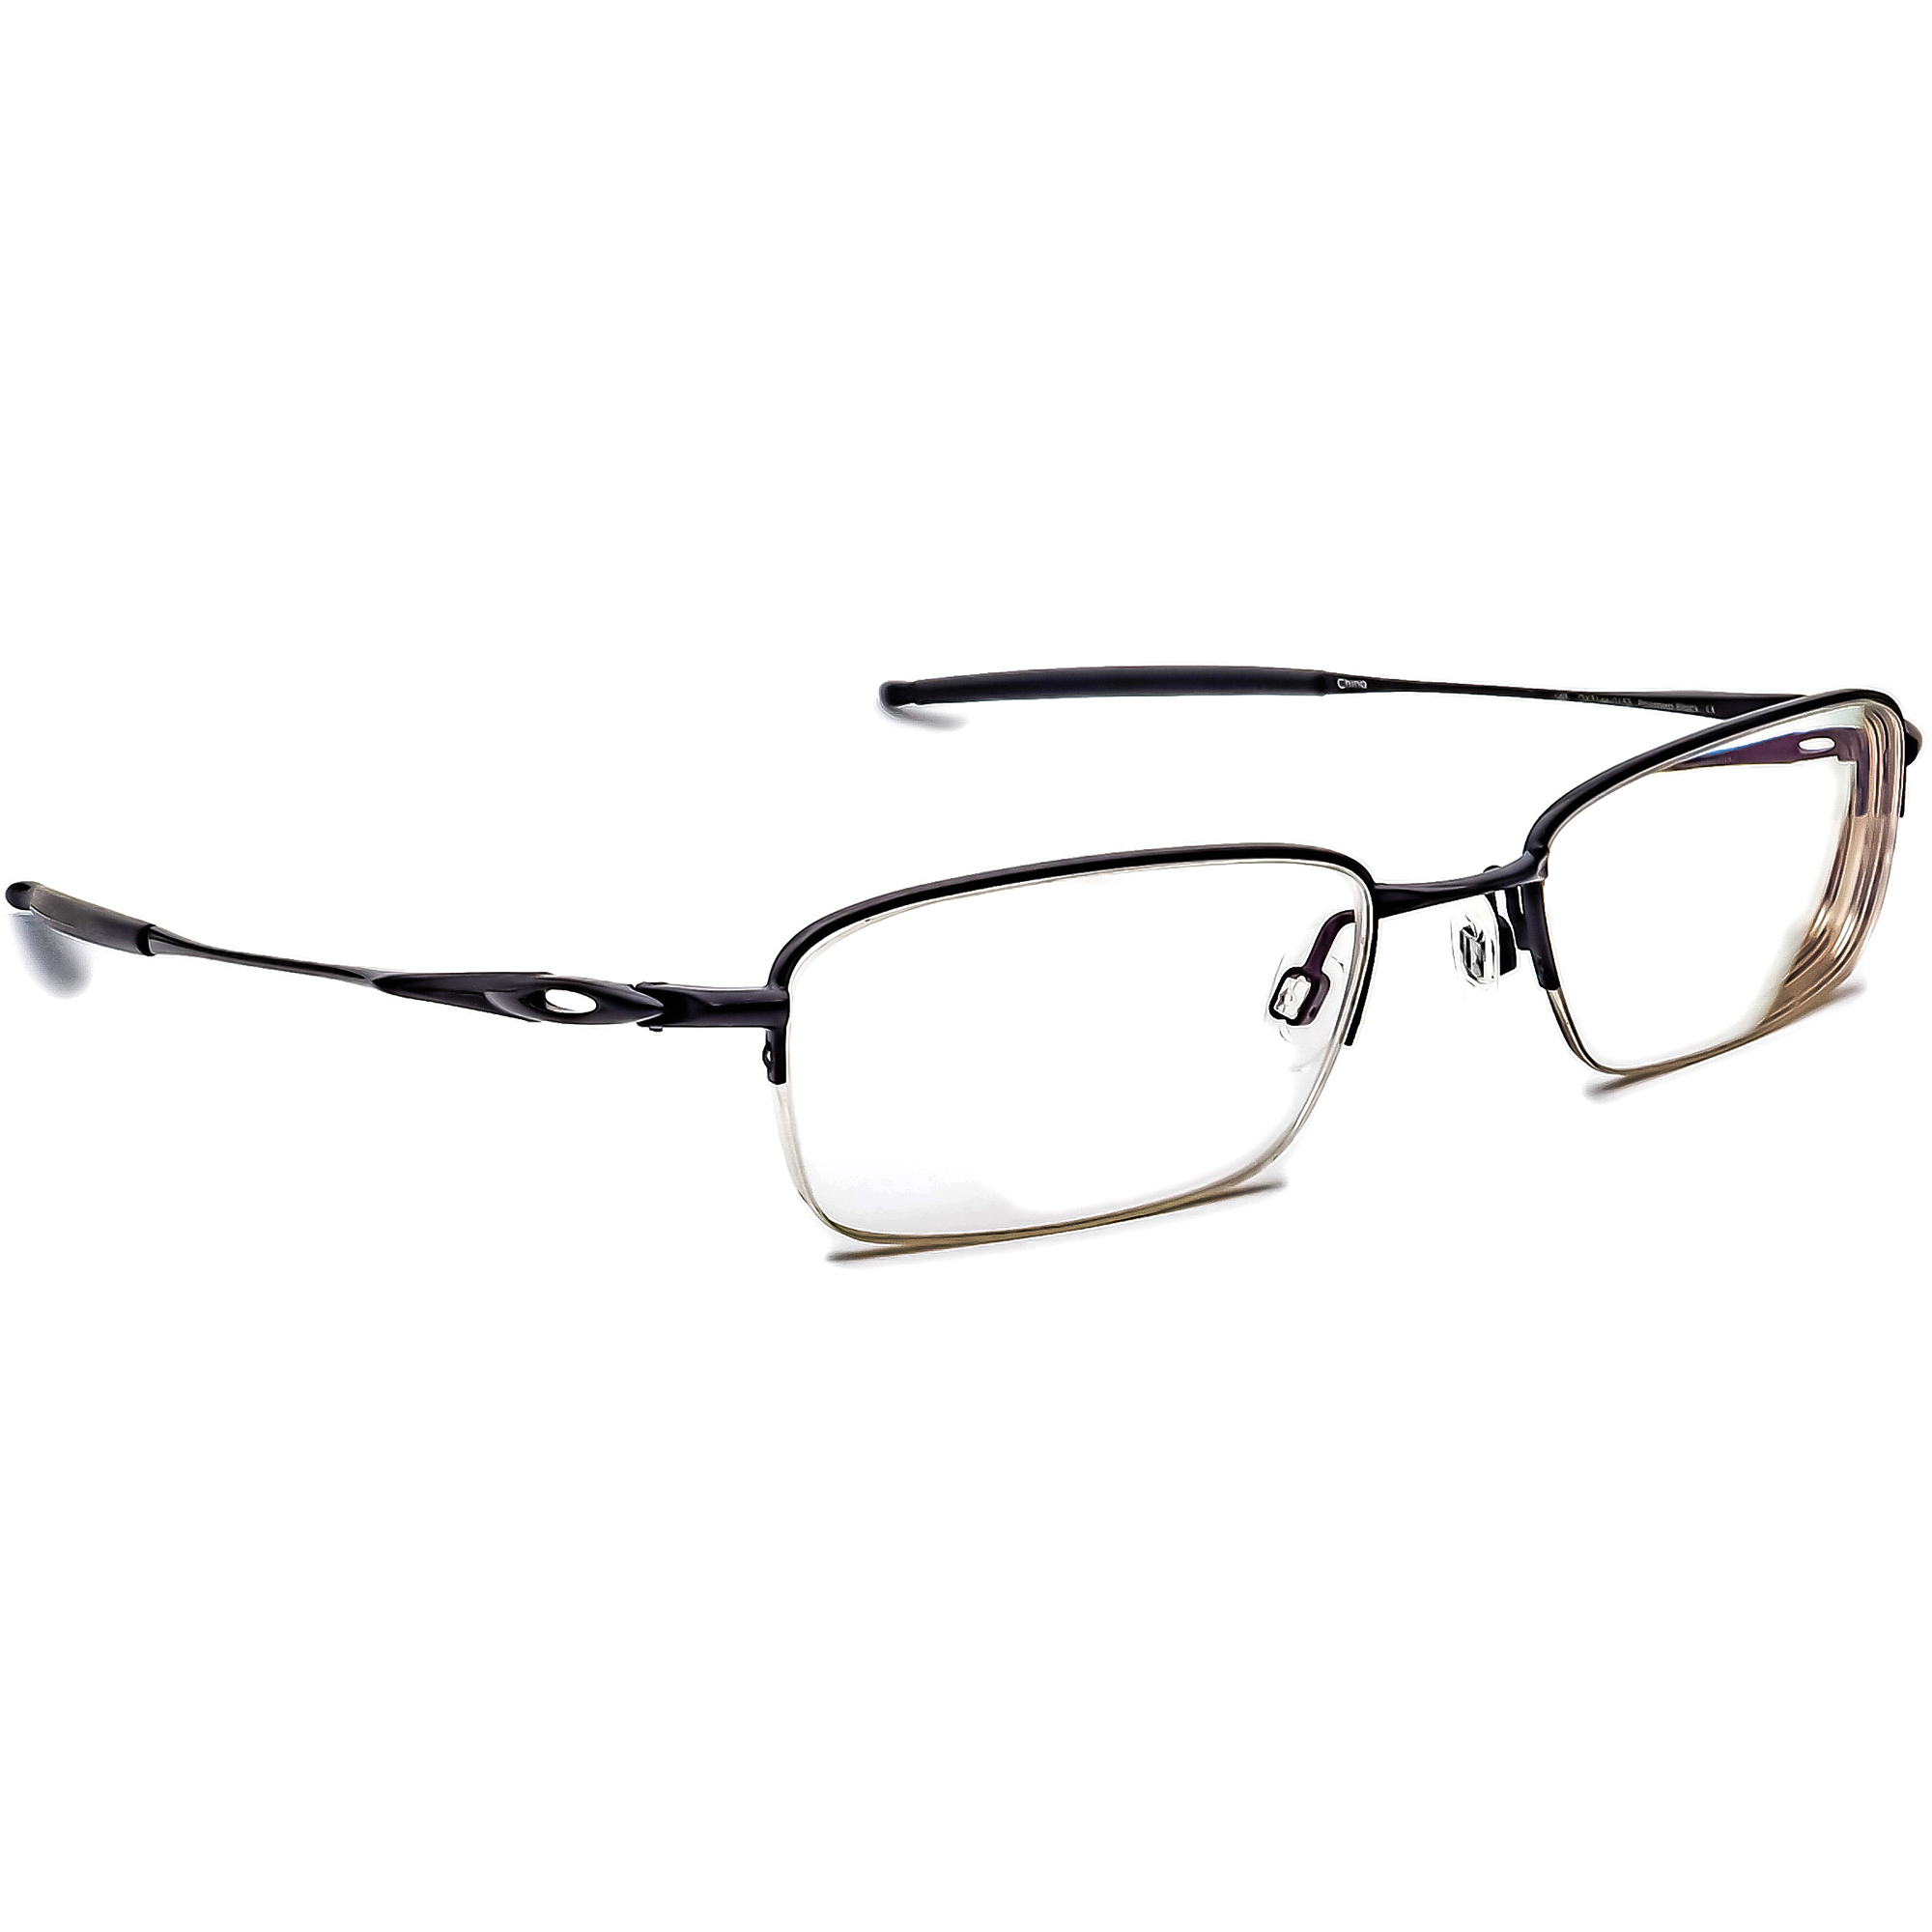 Oakley OX3144-0153 Spoke 0.5 Eyeglasses